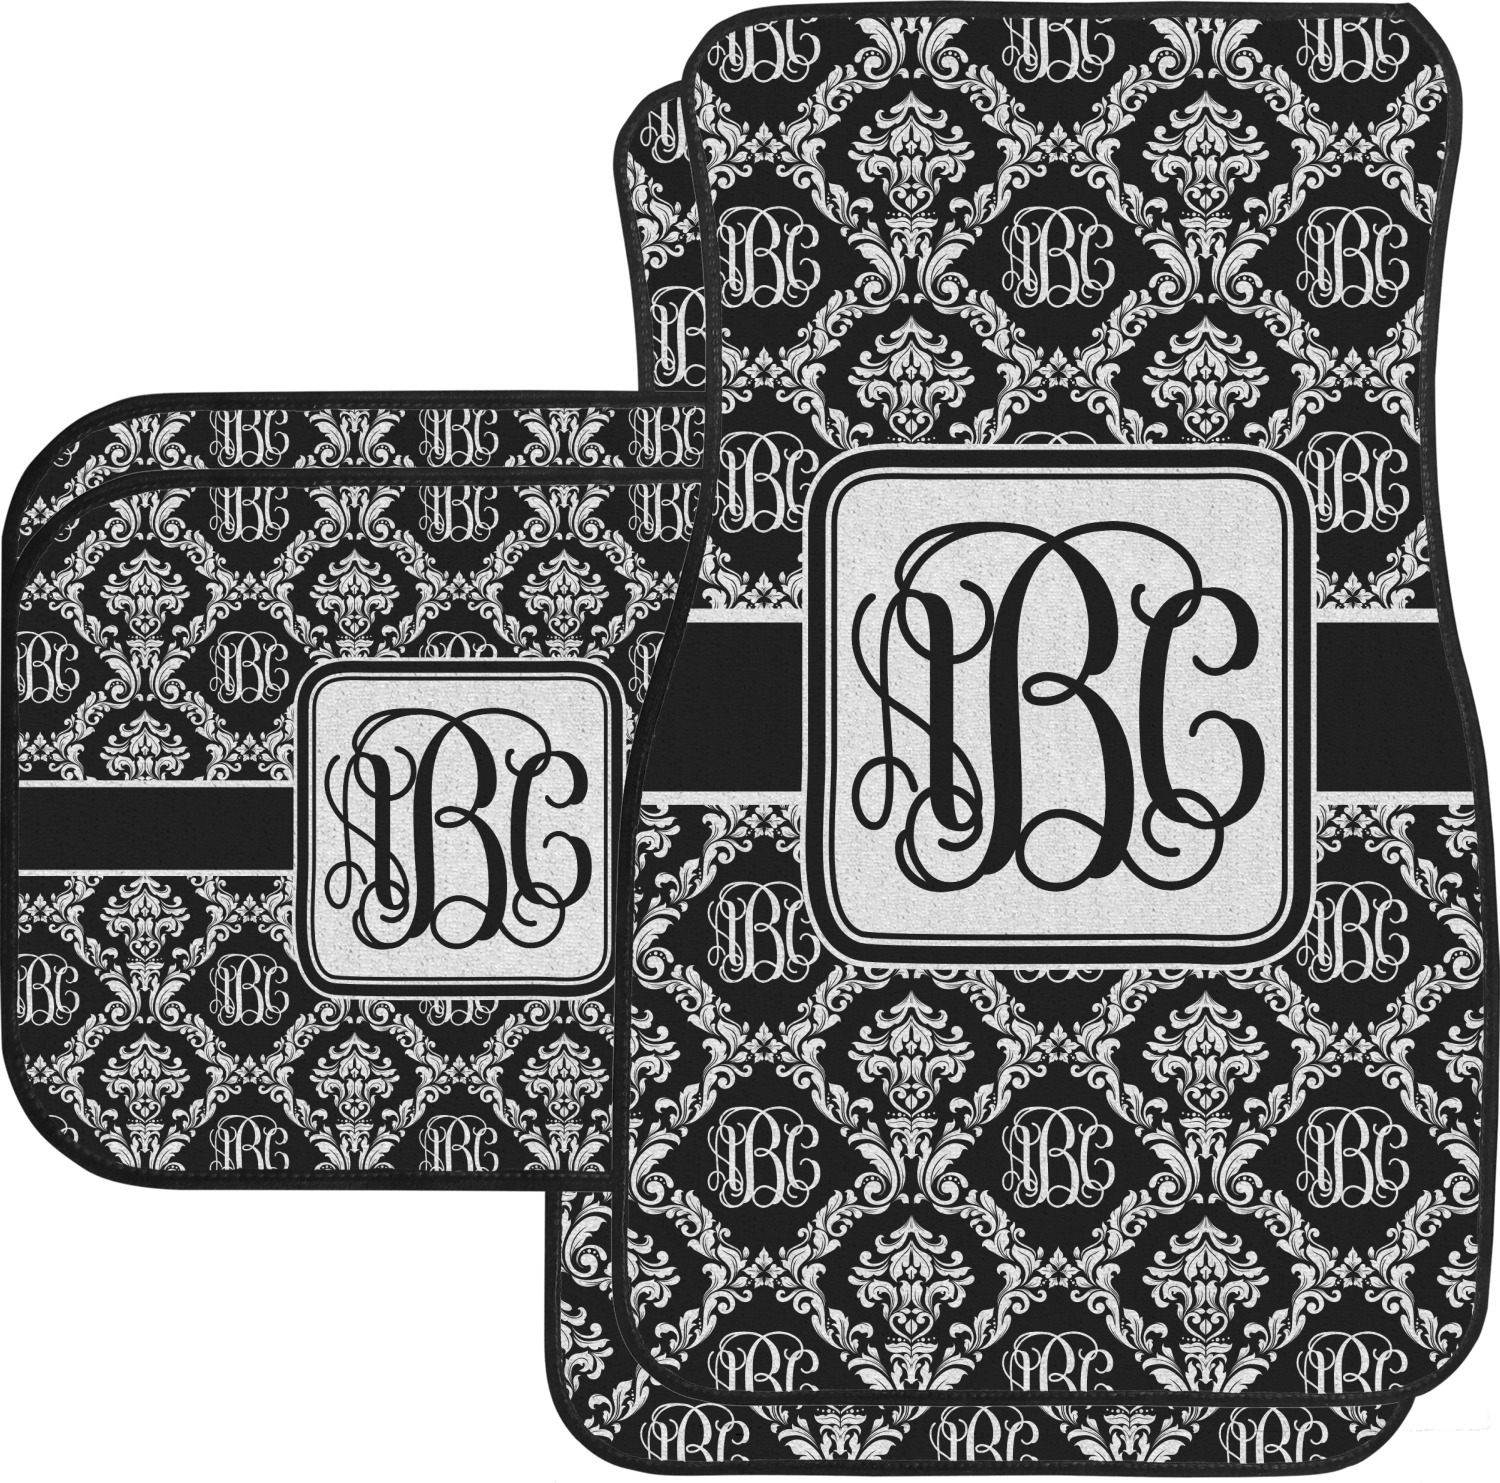 monogram gifts custom mat fullxfull cute sweet gift women decor personalized il for monogrammed mats listing ideas car floor accessories